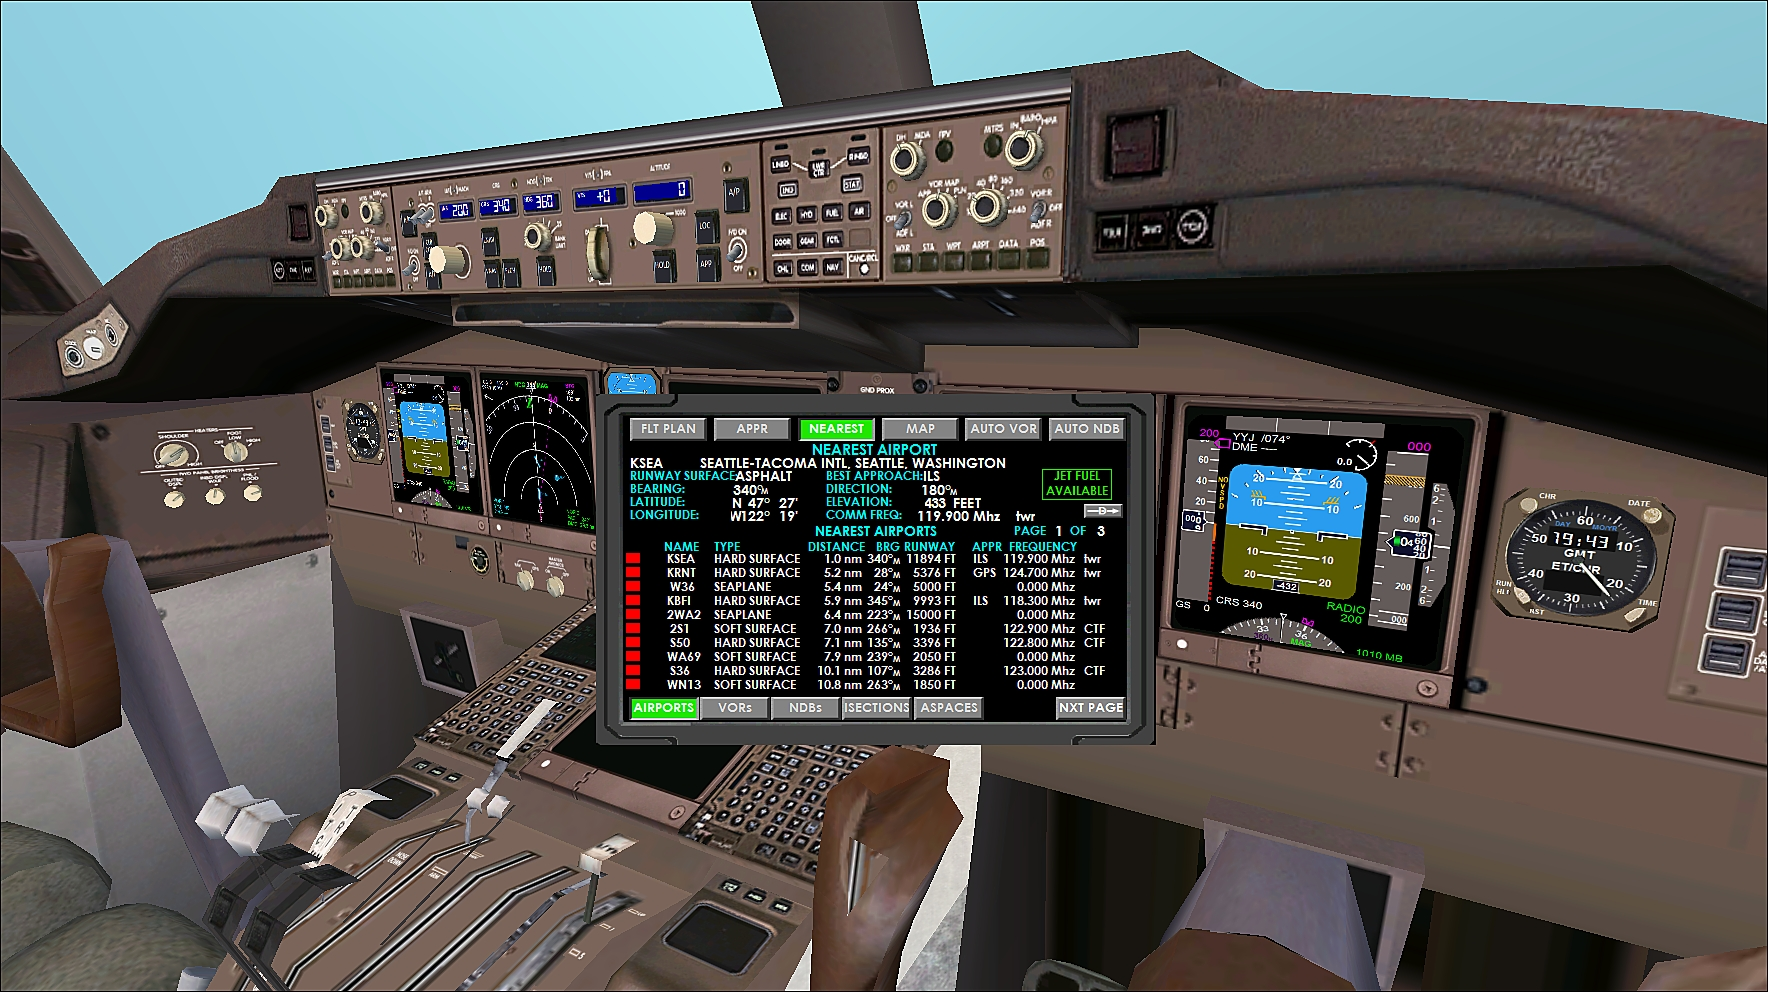 PERFECT FLIGHT - FSX MISSIONS UNITED B777-300